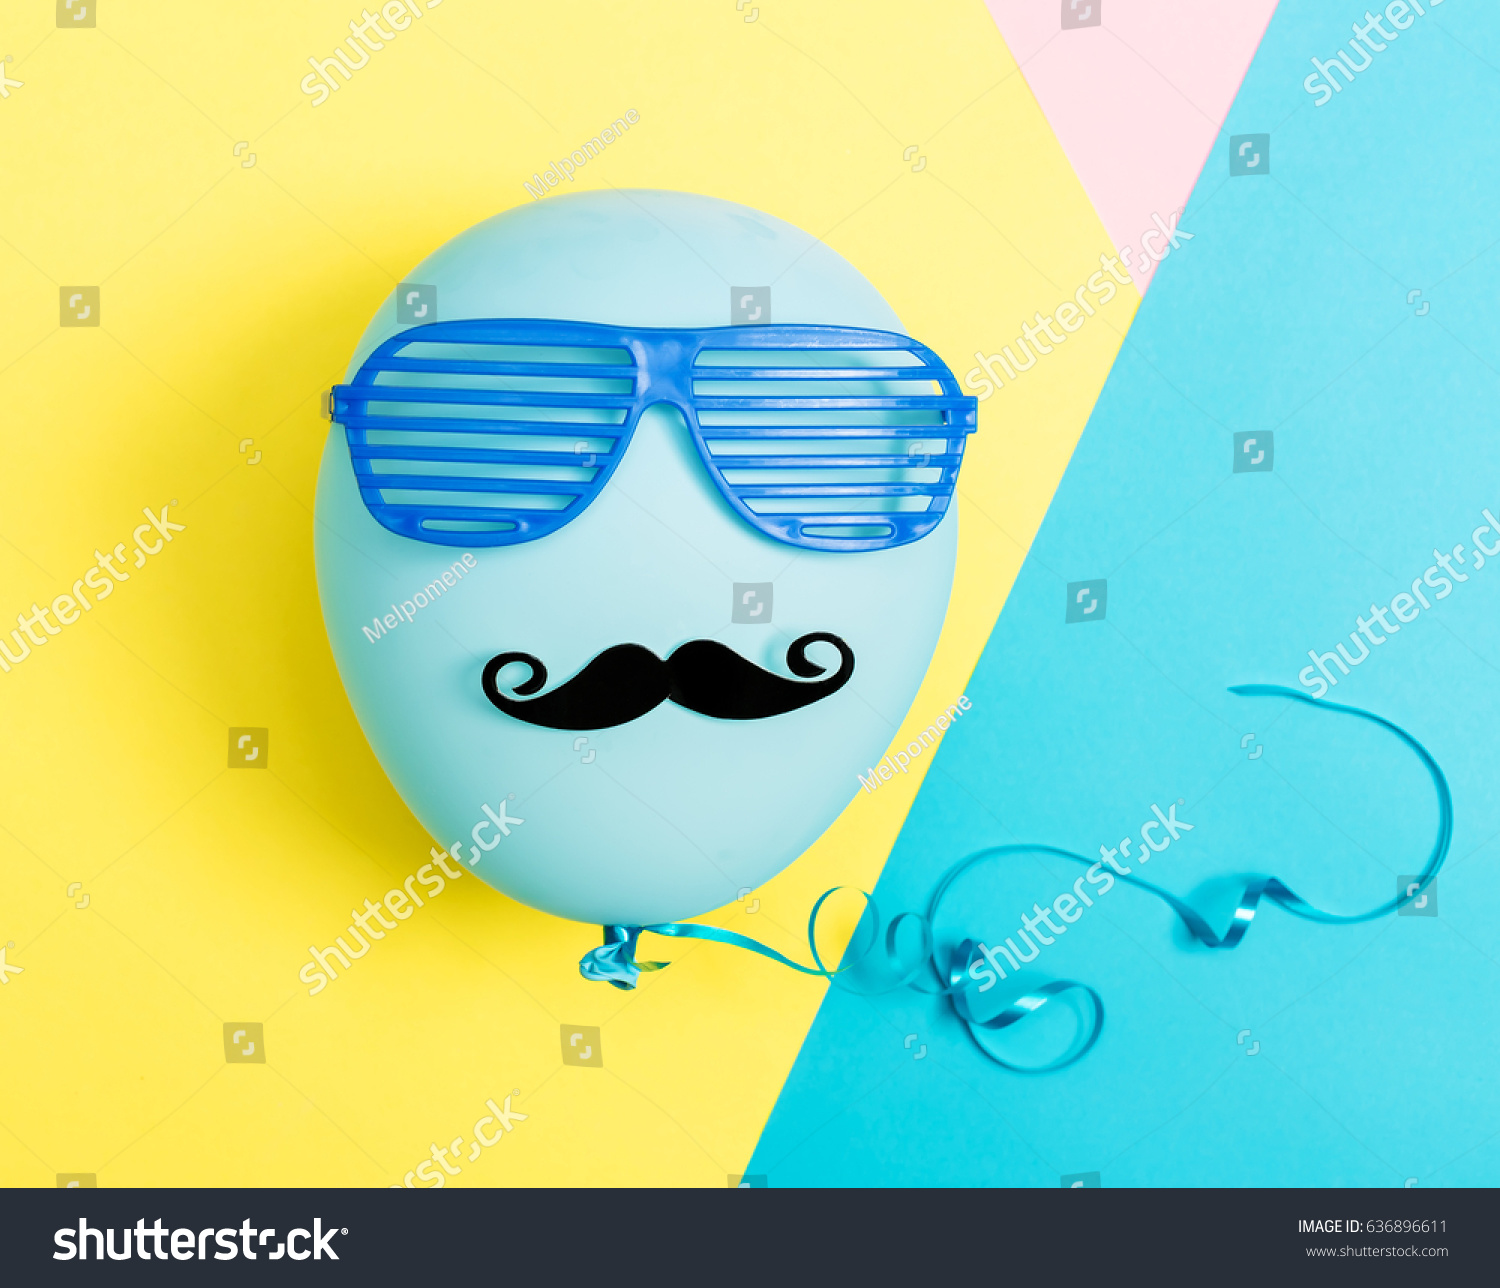 Party Theme With Balloon Moustache And Shutter Shades On A Vibrant Colored Background